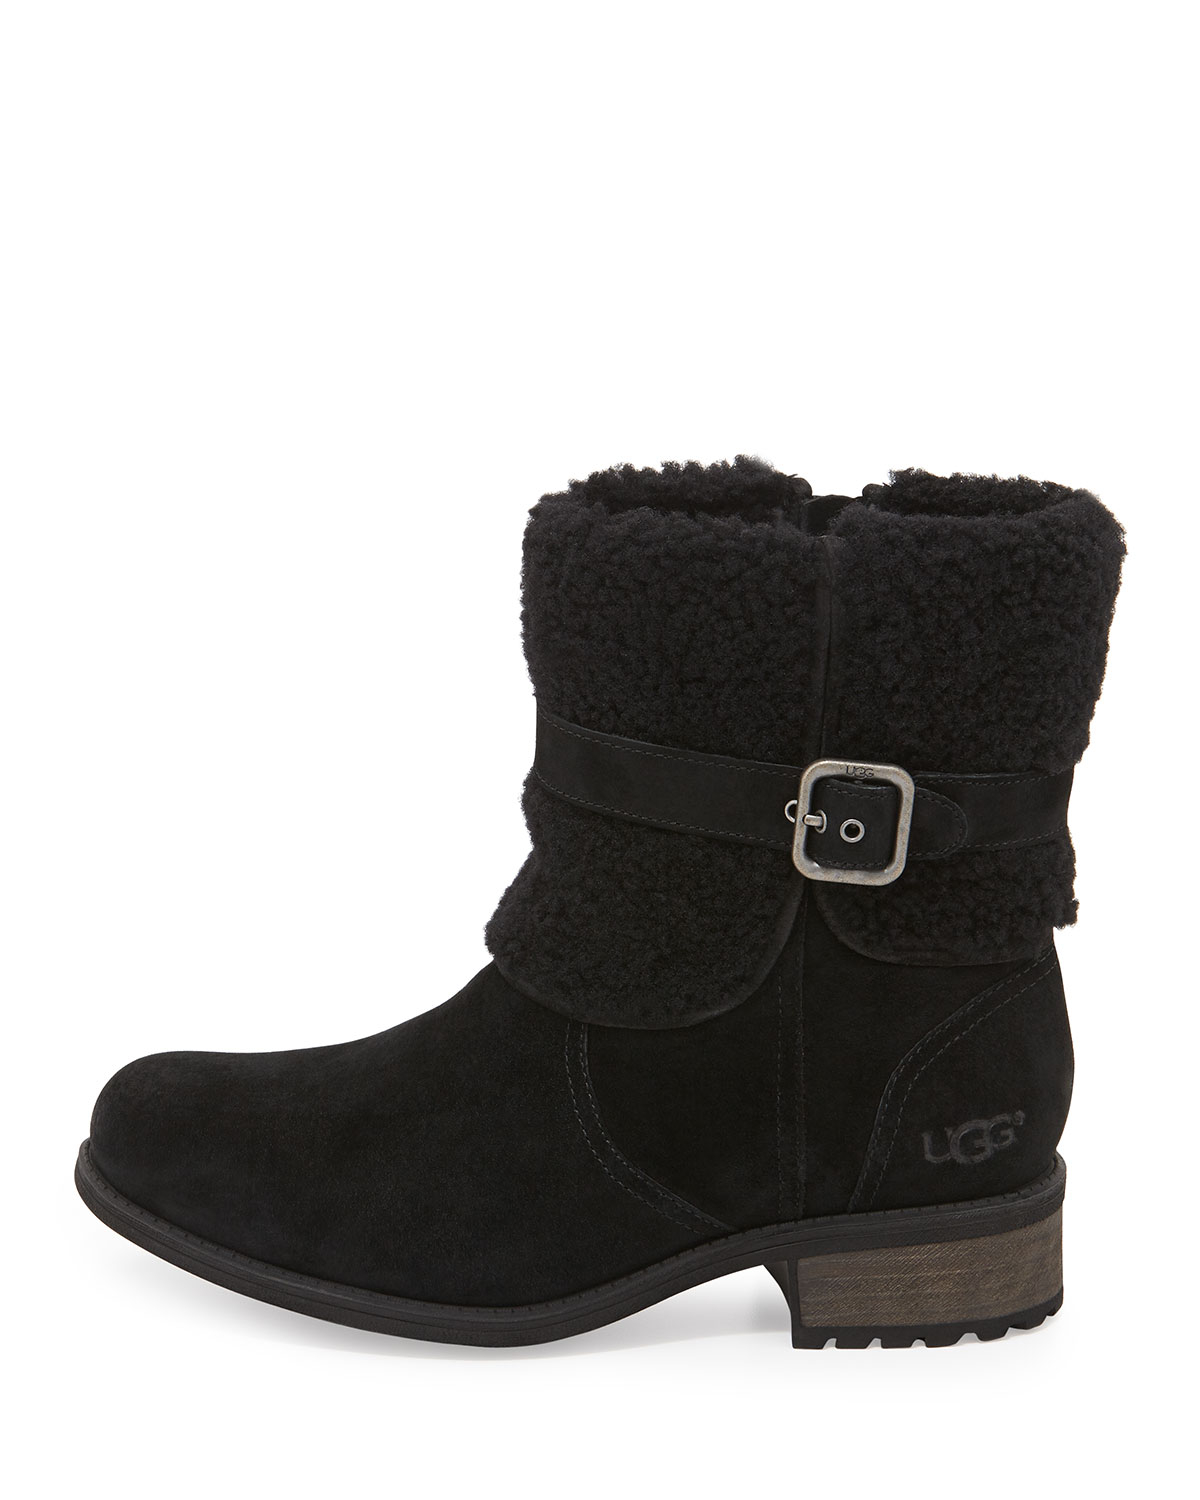 ugg boot black friday 2014